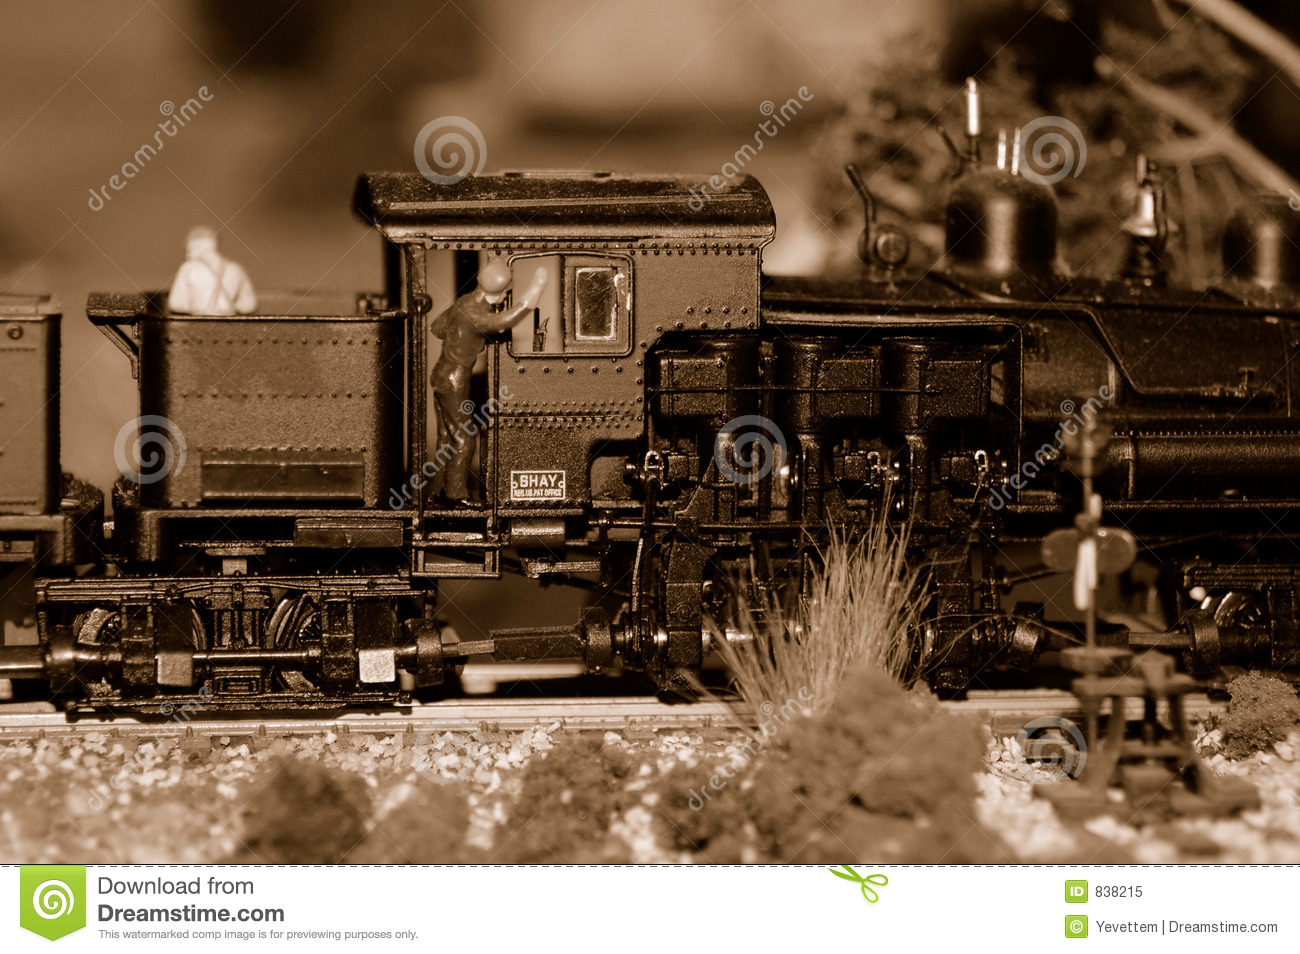 Train Engine and Engineer